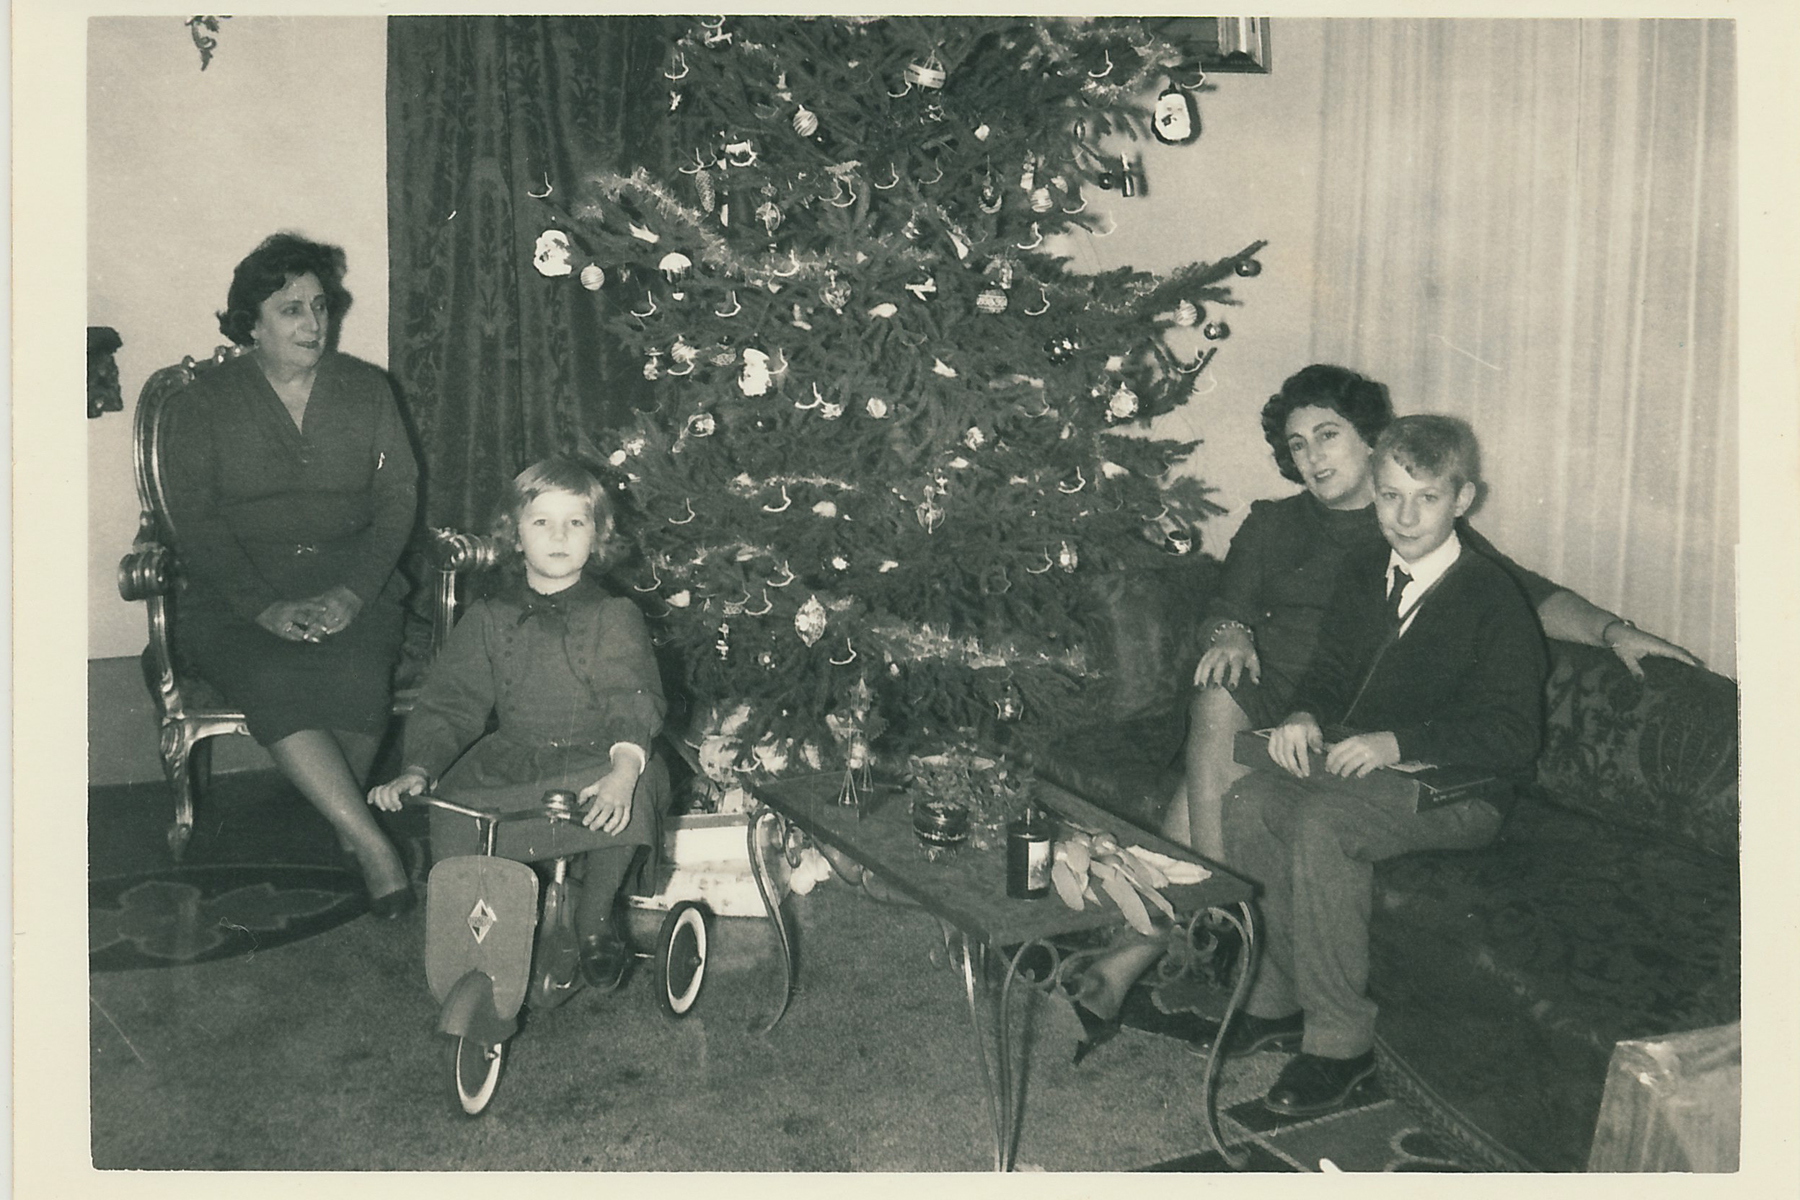 With her daughter Lucy and grandchildren Tina and Fred.